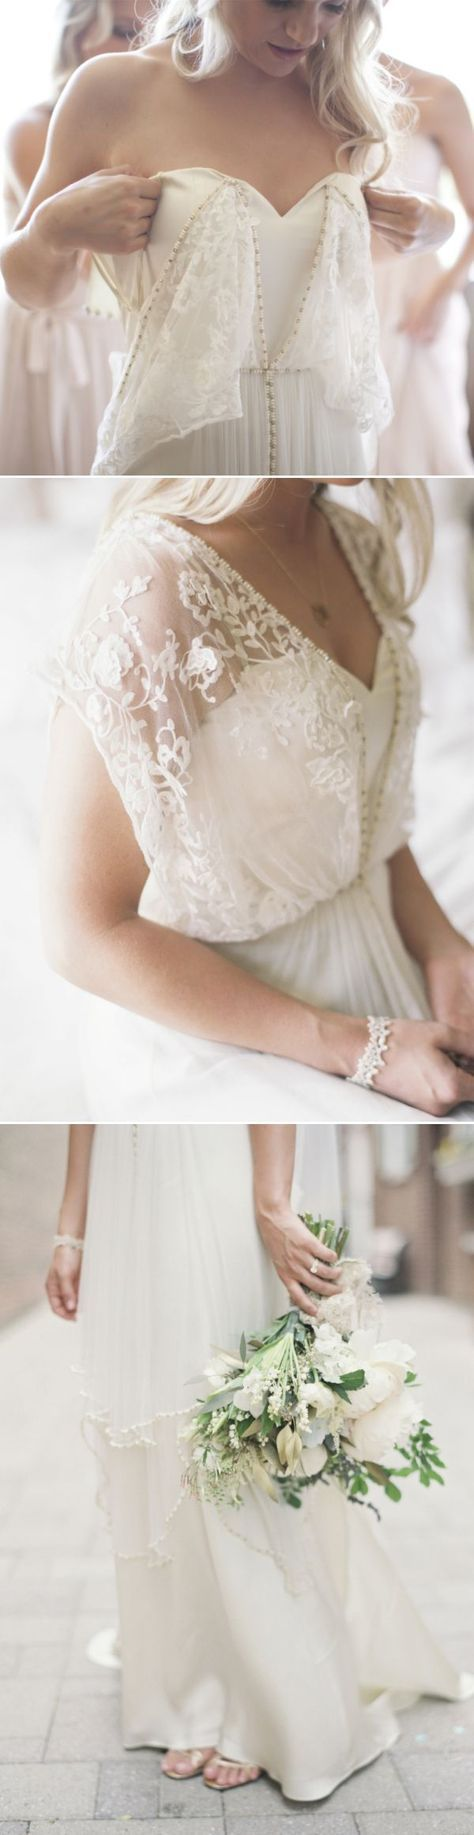 Wedding dresses for brides bridesmaid and flower girls in